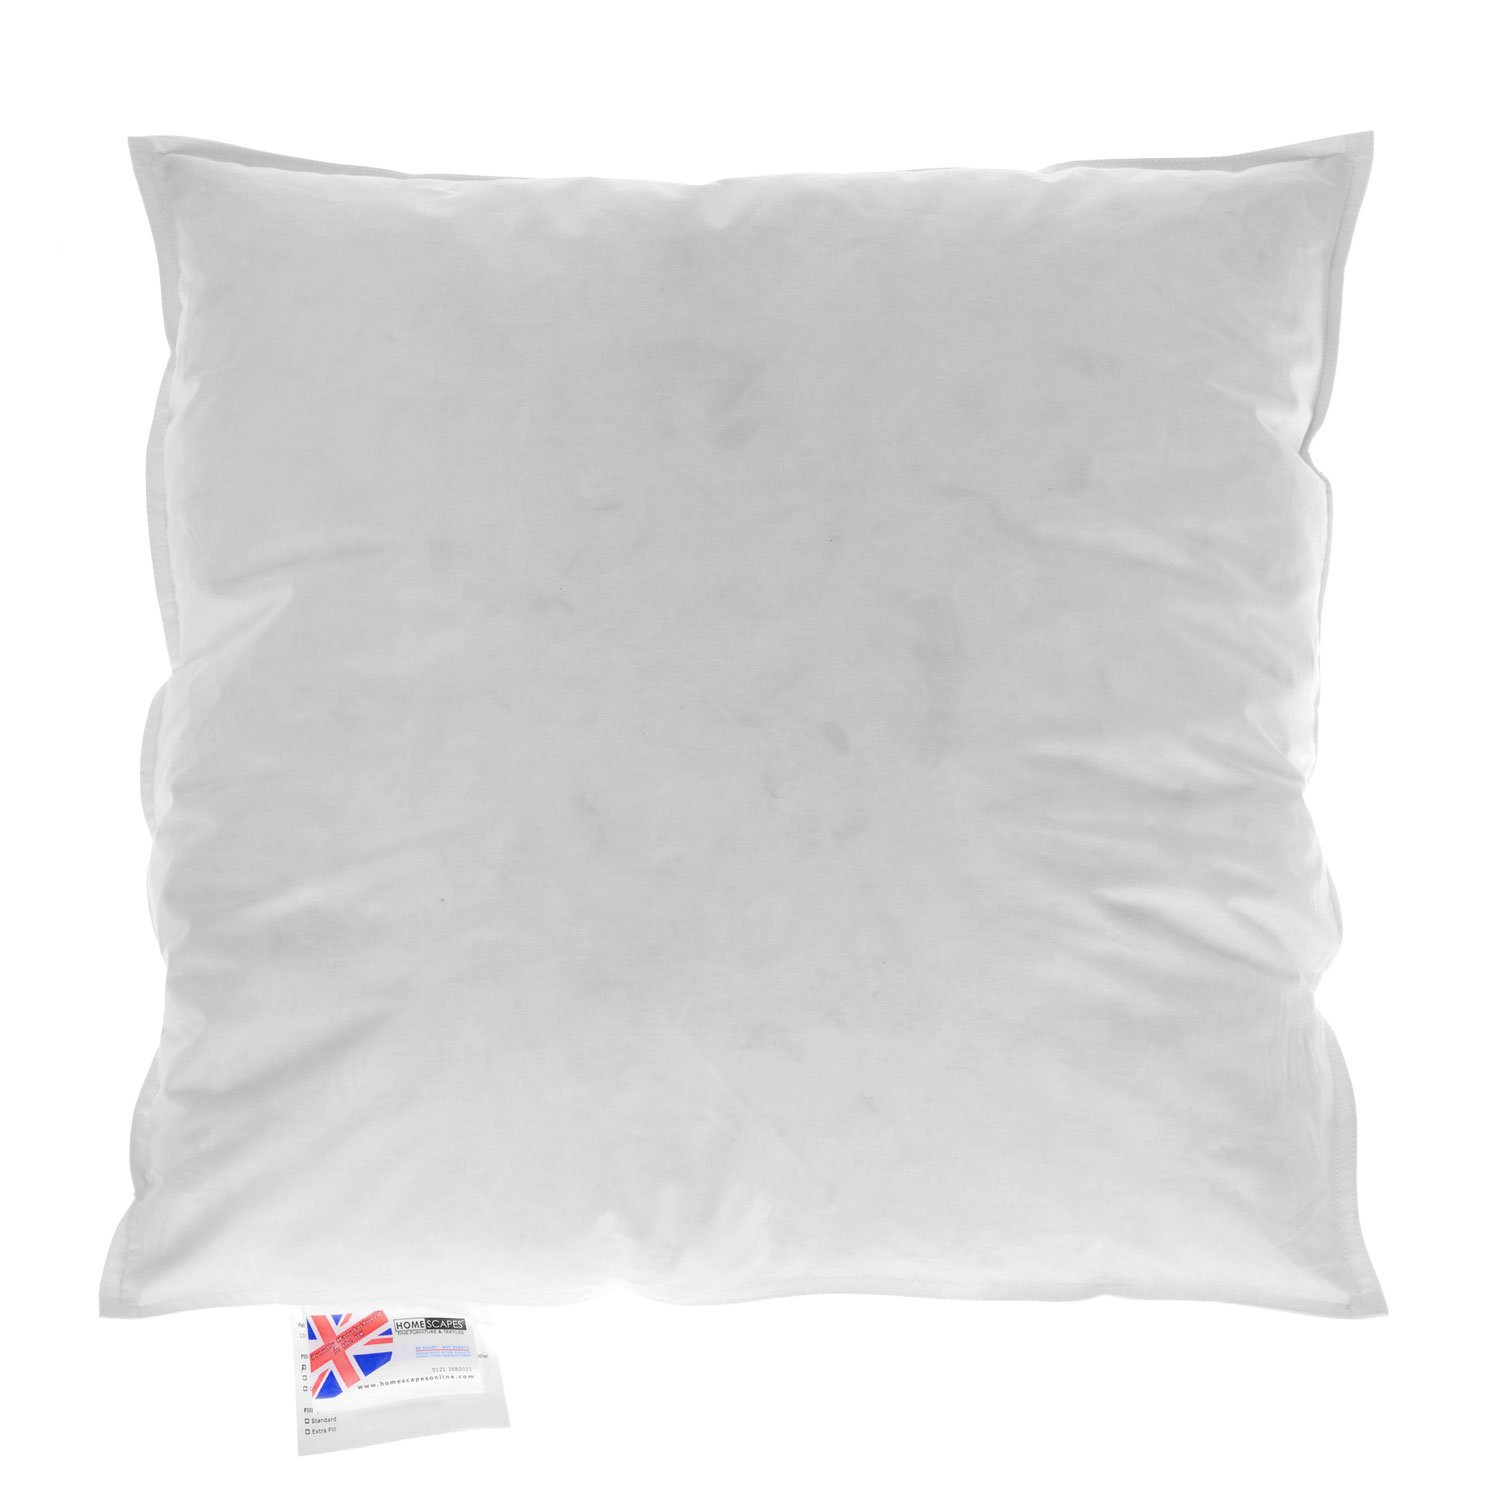 covers enchanting a fear x insert in inserts absorbing to smartly cheery pillow ikea gh